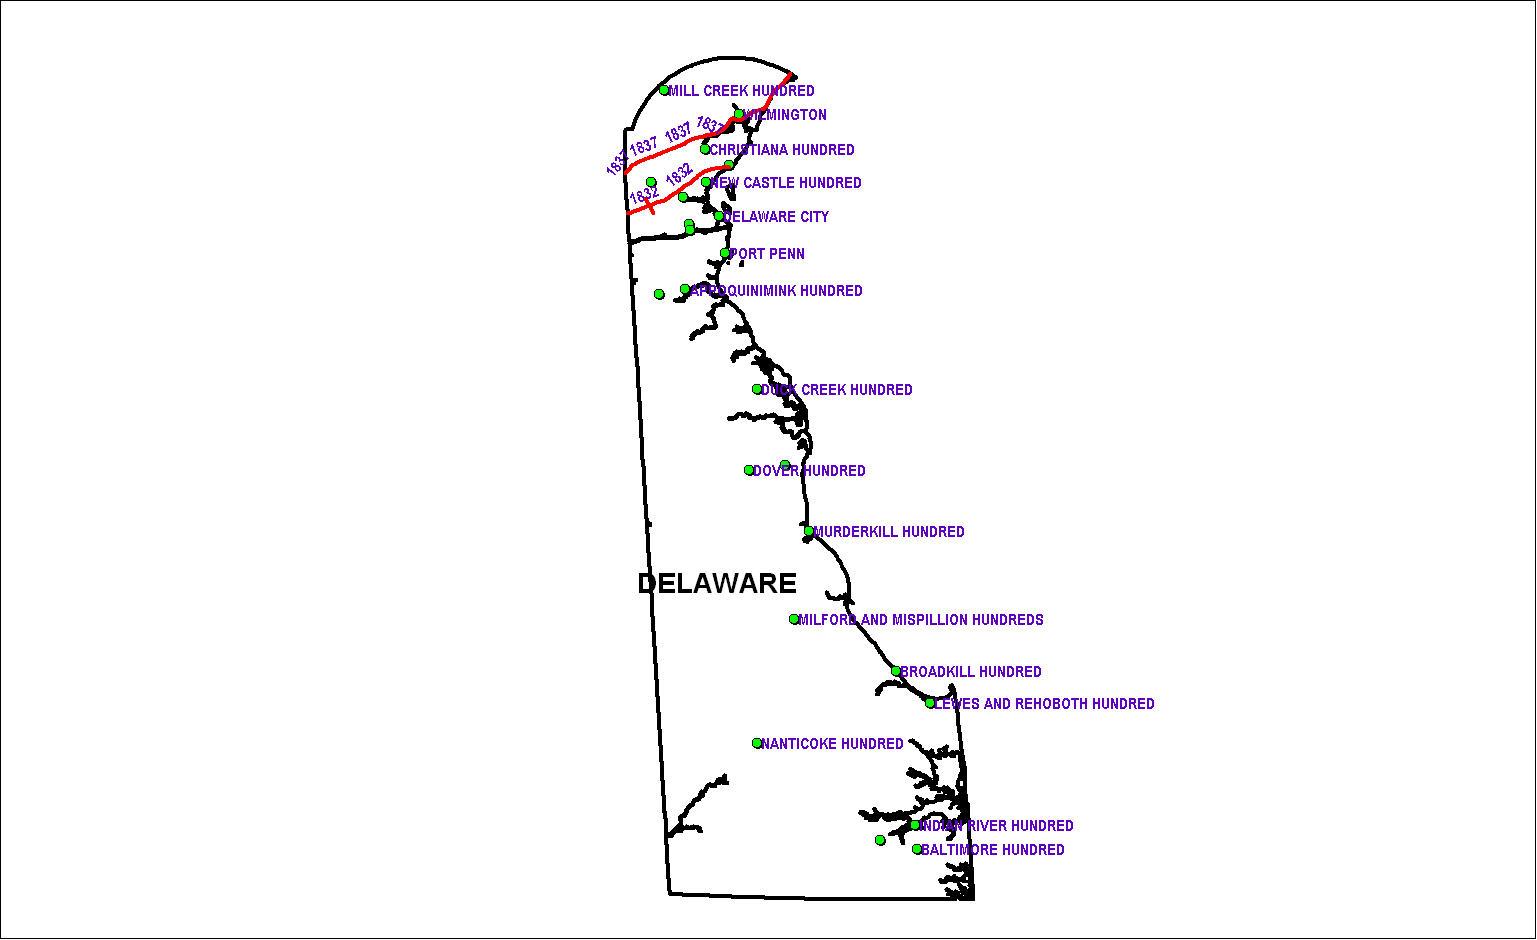 Delaware Railroad Map as of 1850